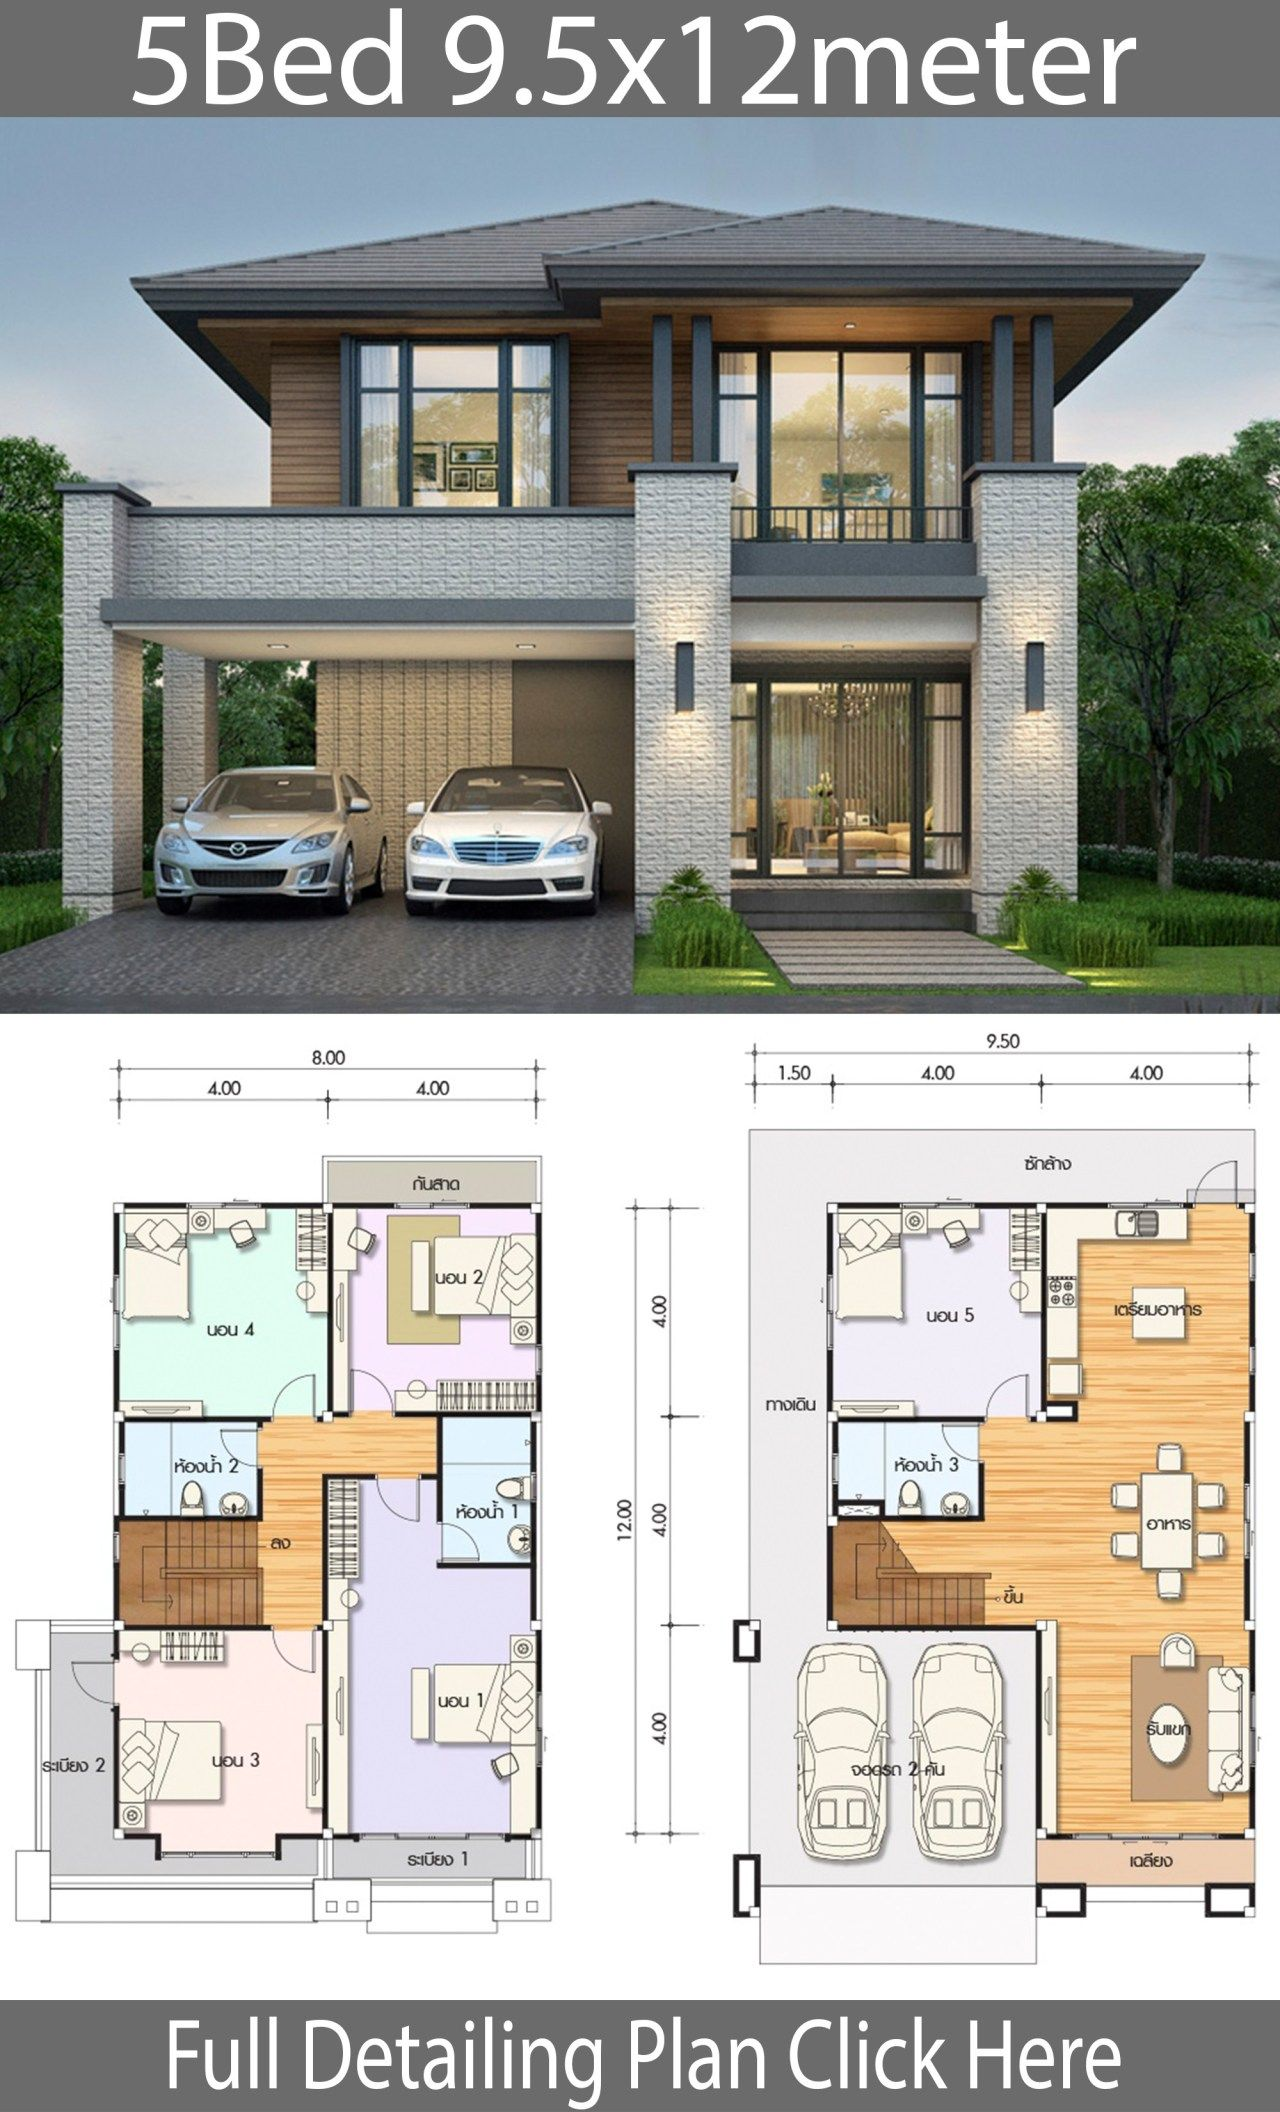 House Design Plan 9 5x12m With 5 Bedrooms Home Ideas Duplex House Design House Front Design Model House Plan